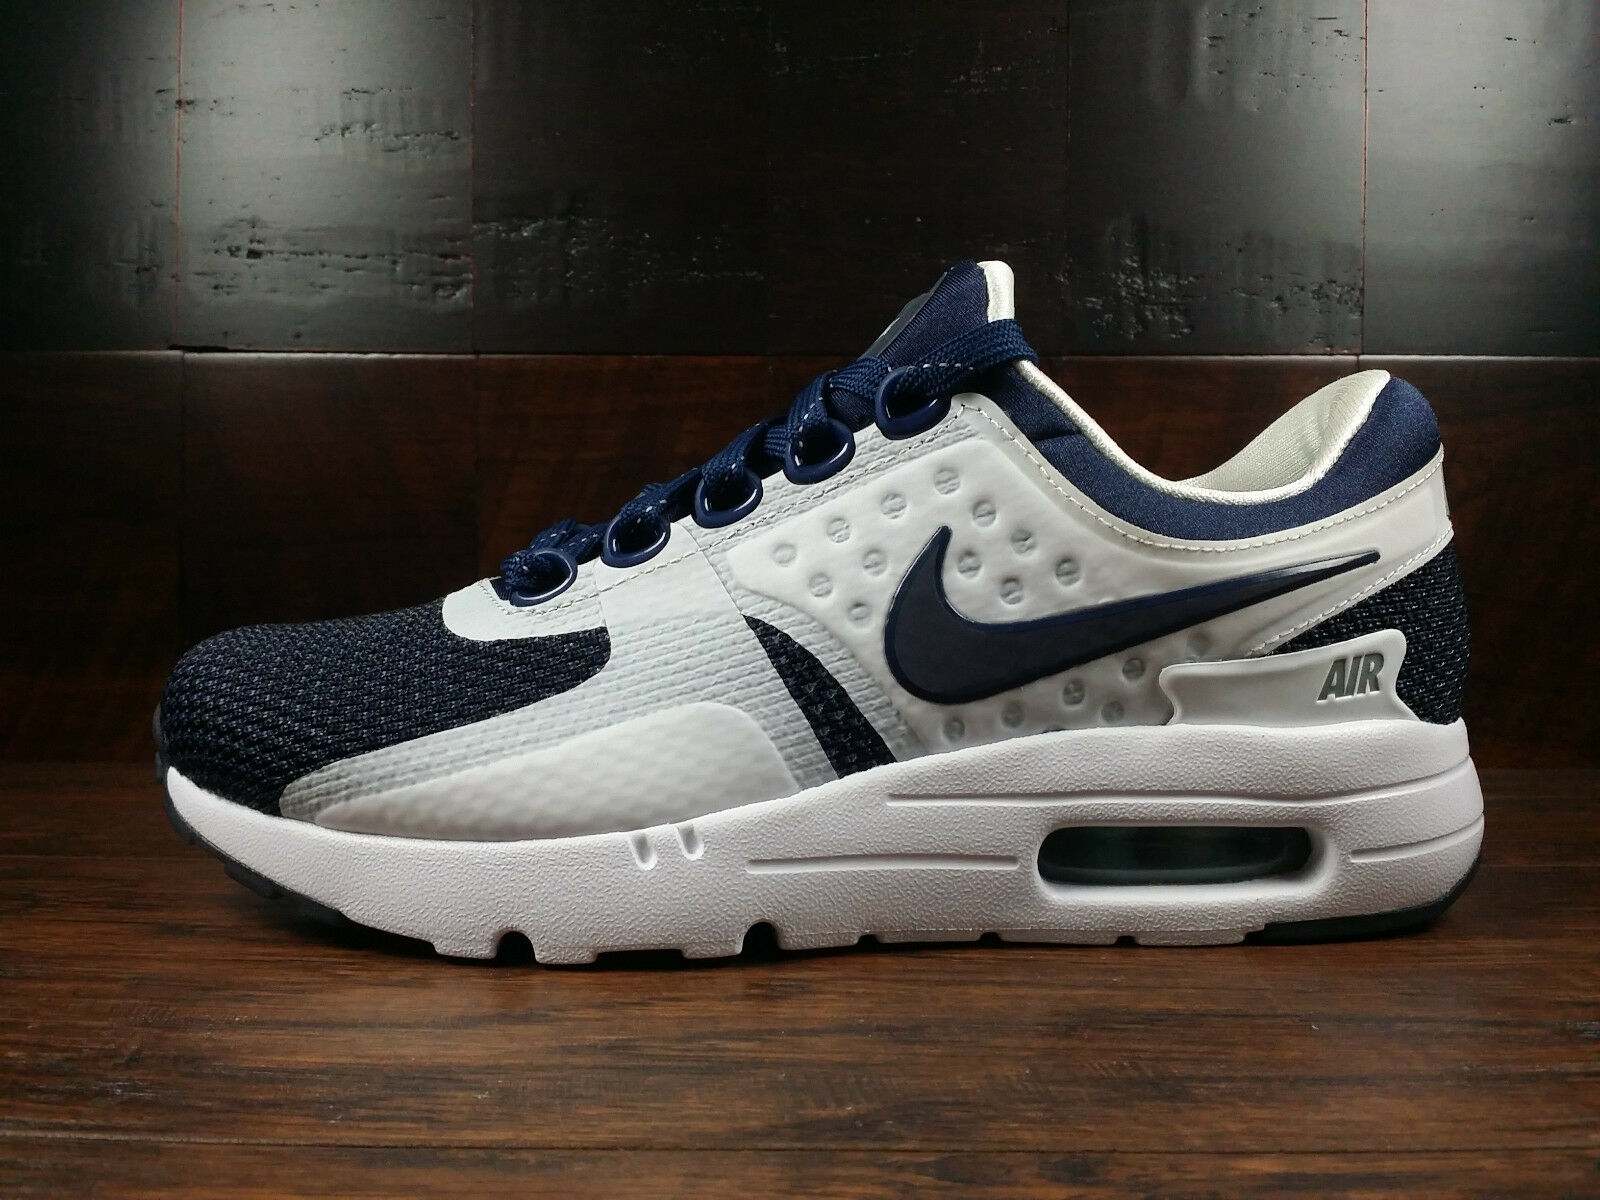 Nike Air Max Zero QS Price reduction Hatfield Price reduction Comfortable Seasonal clearance sale